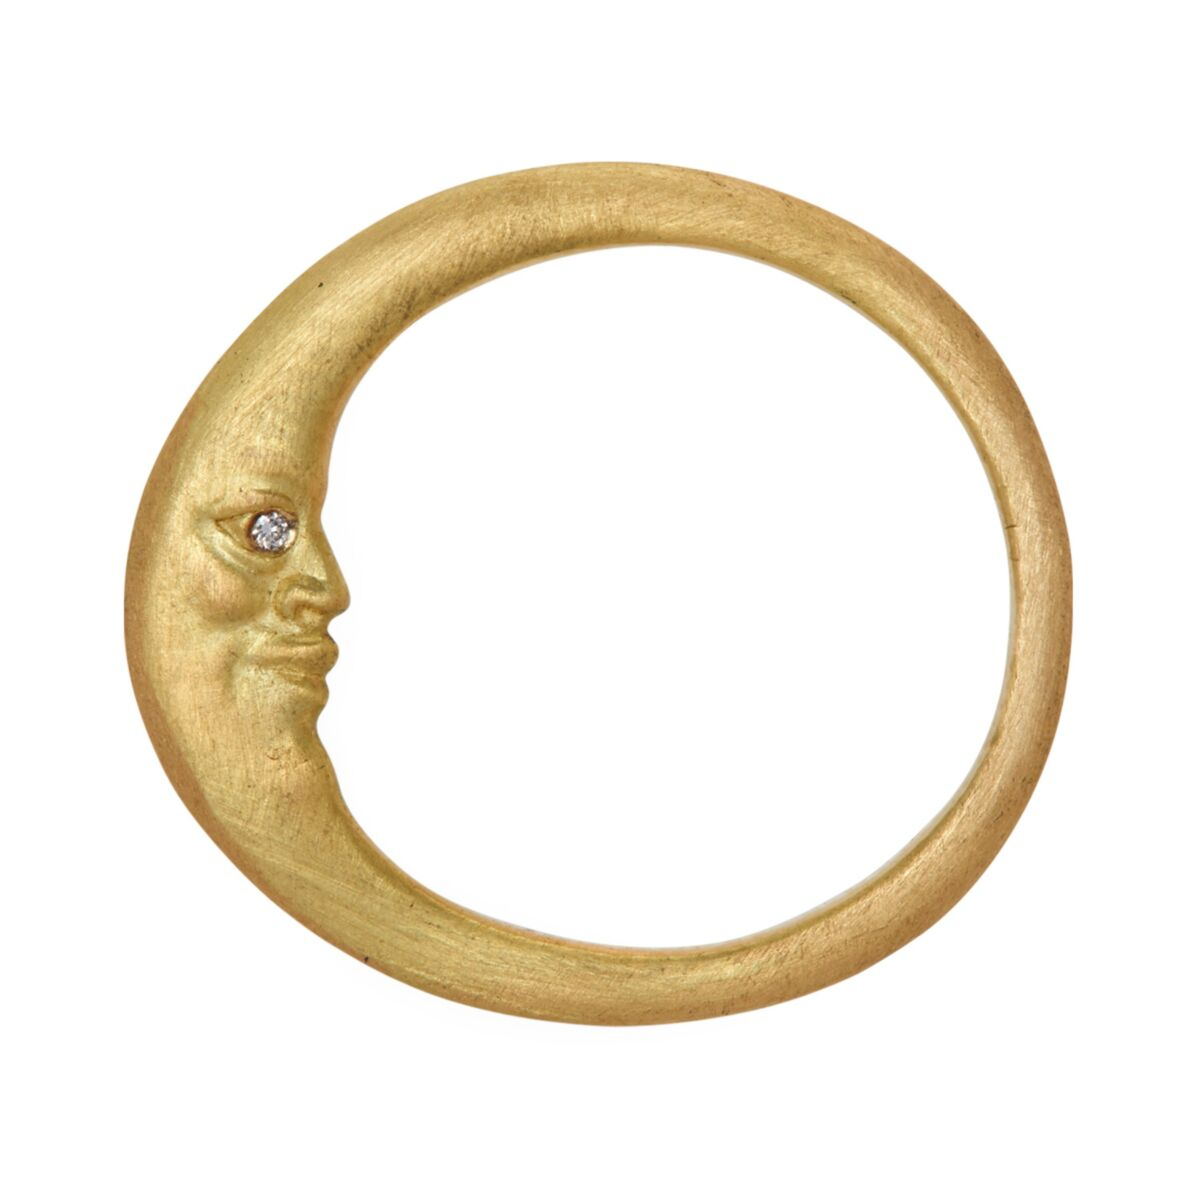 Crescent Moonface Ring with Diamond Eyes image